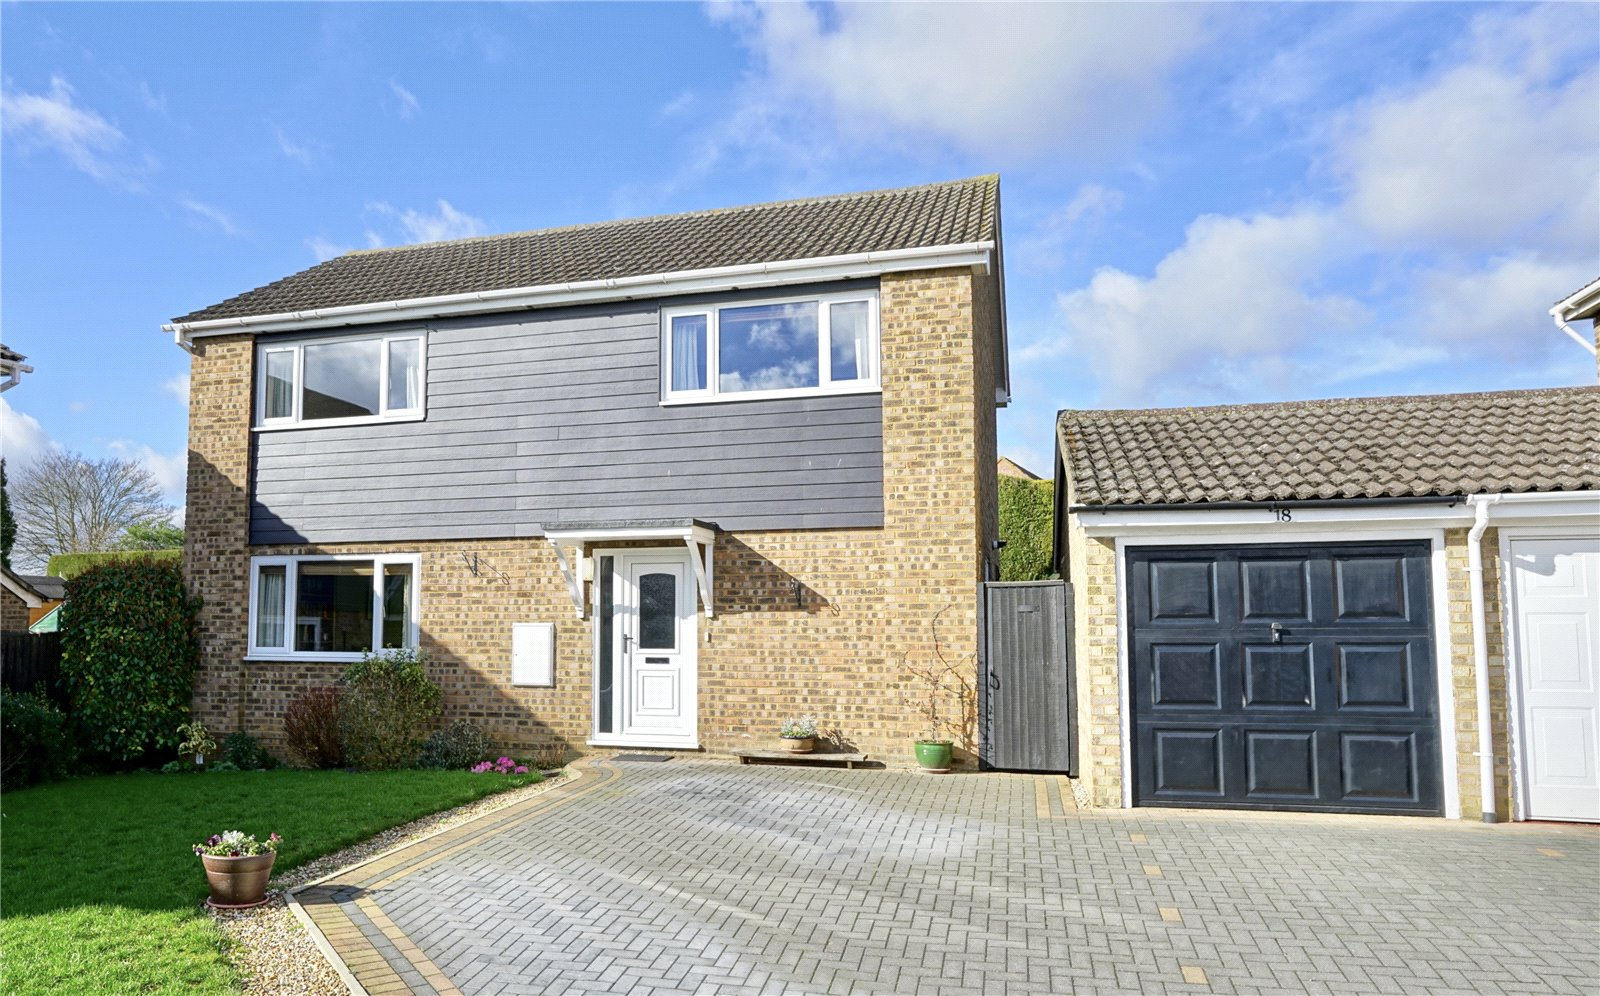 4 bed house for sale in Whistler Road, Eaton Ford, PE19